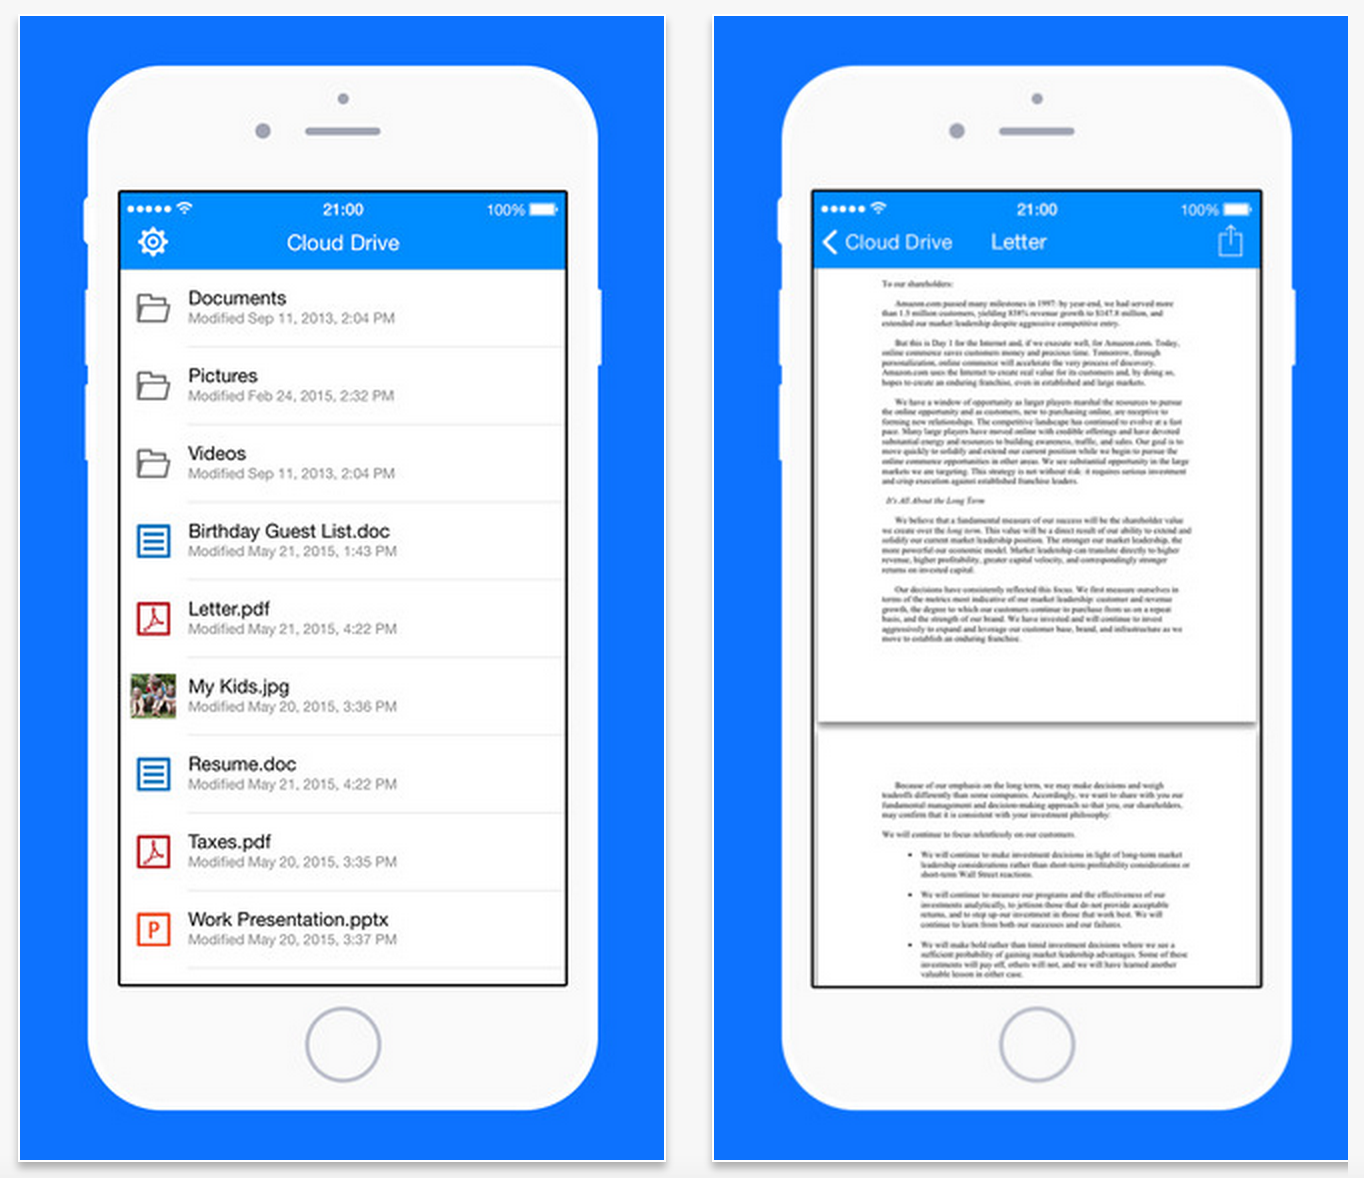 Amazon Releases Cloud Drive File Management App For Iphone And Ipad 9to5mac